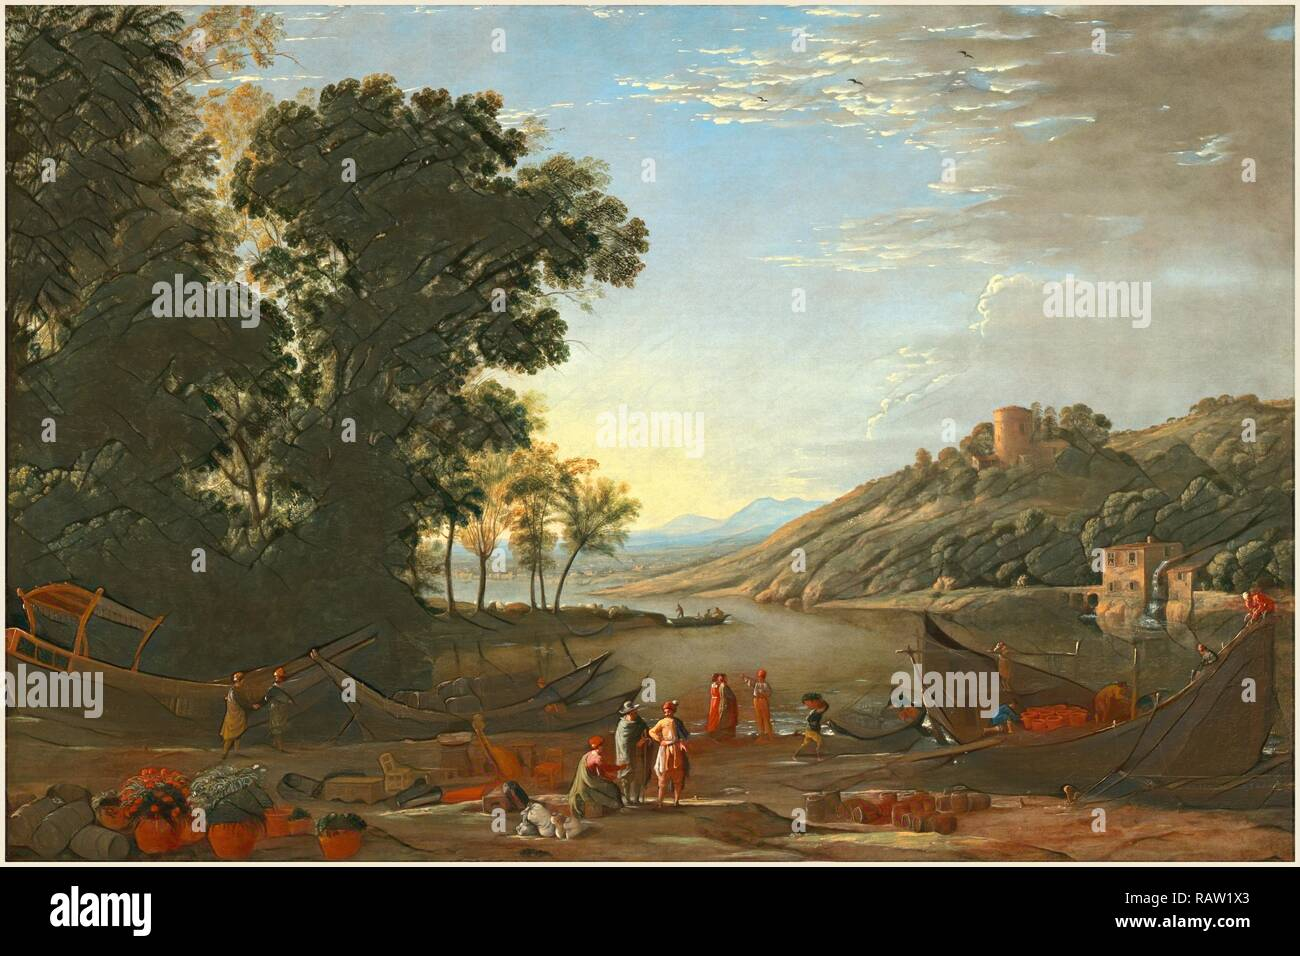 Claude Lorrain, French (1604-1605-1682), Landscape with Merchants, c. 1629, oil on canvas. Reimagined Stock Photo